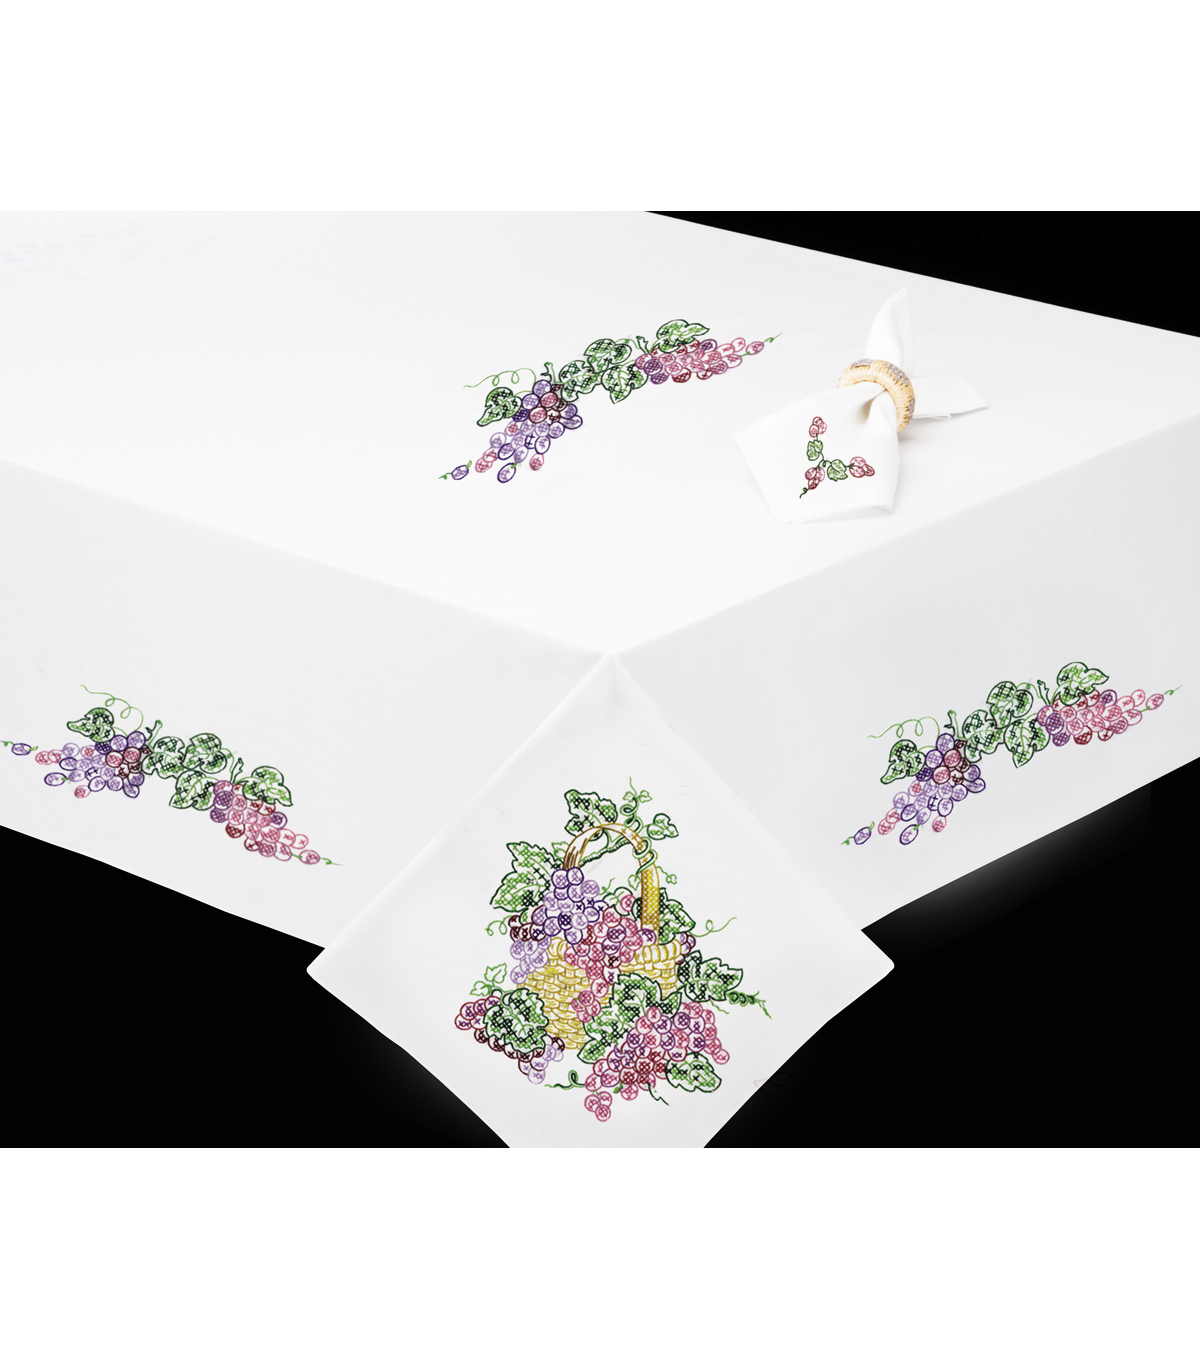 Tobin Grapes Stamped Napkins For Embroidery